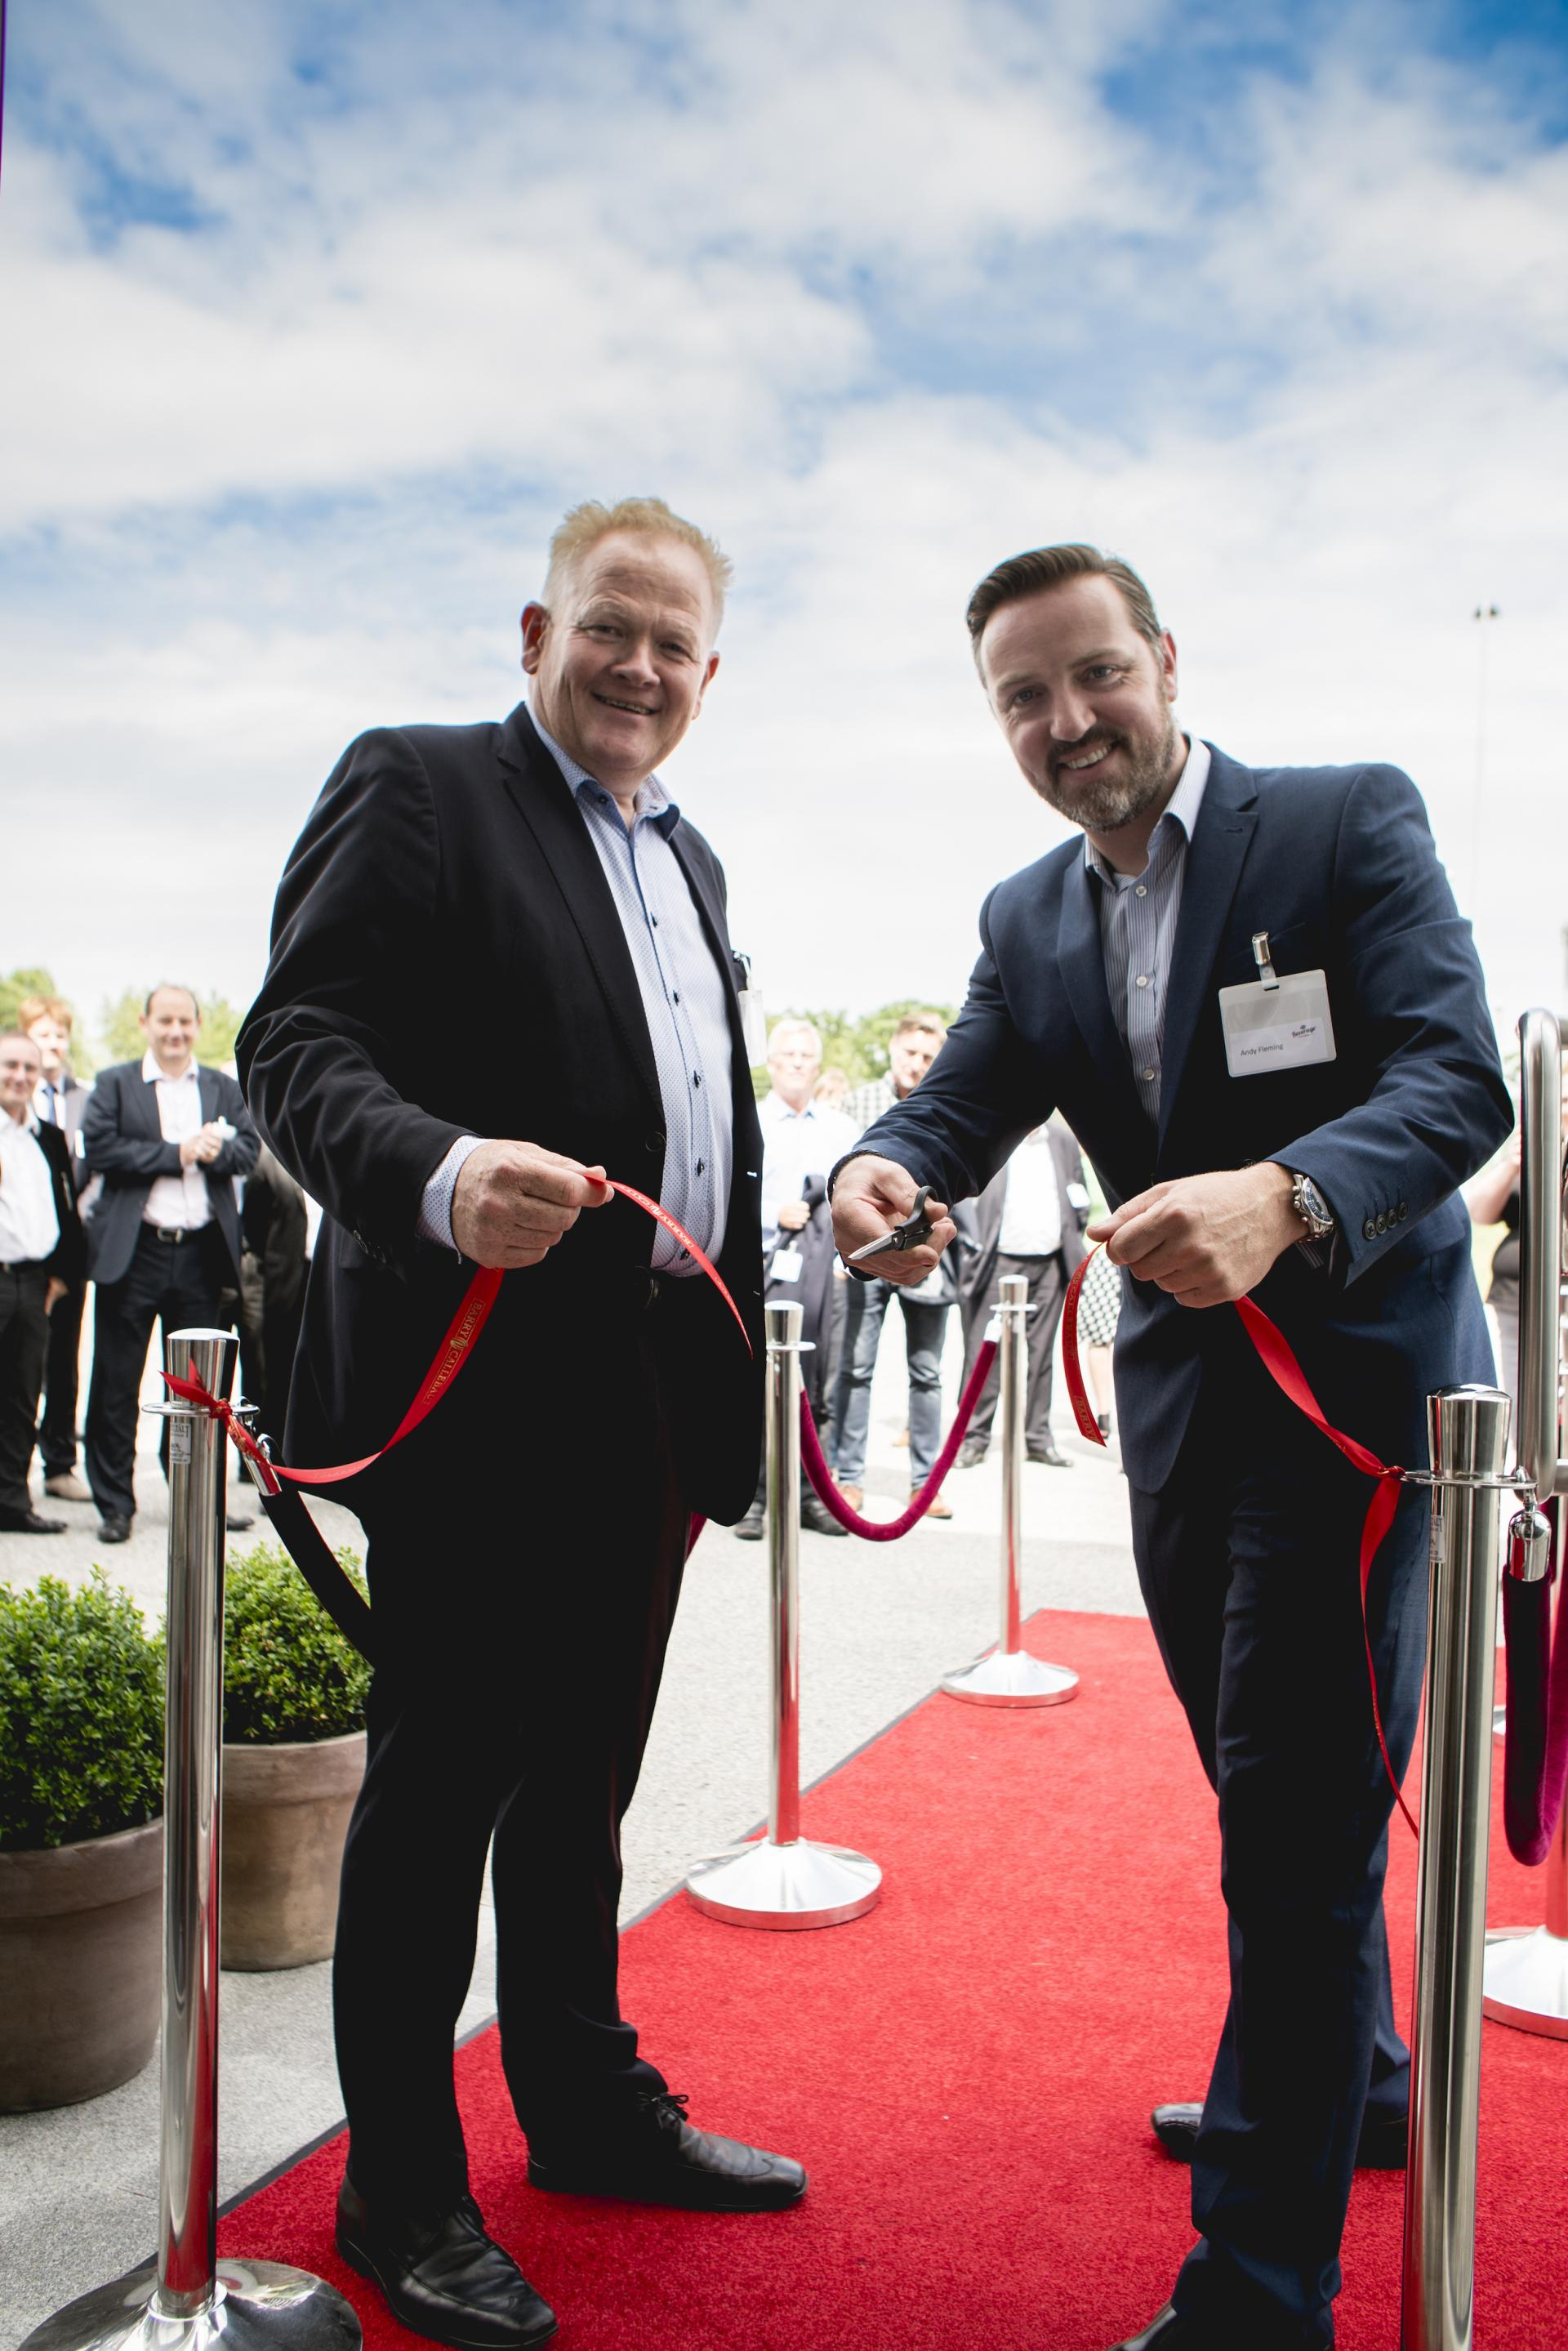 Barry Callebaut Beverages Academy Sweden - Ribbon cutting